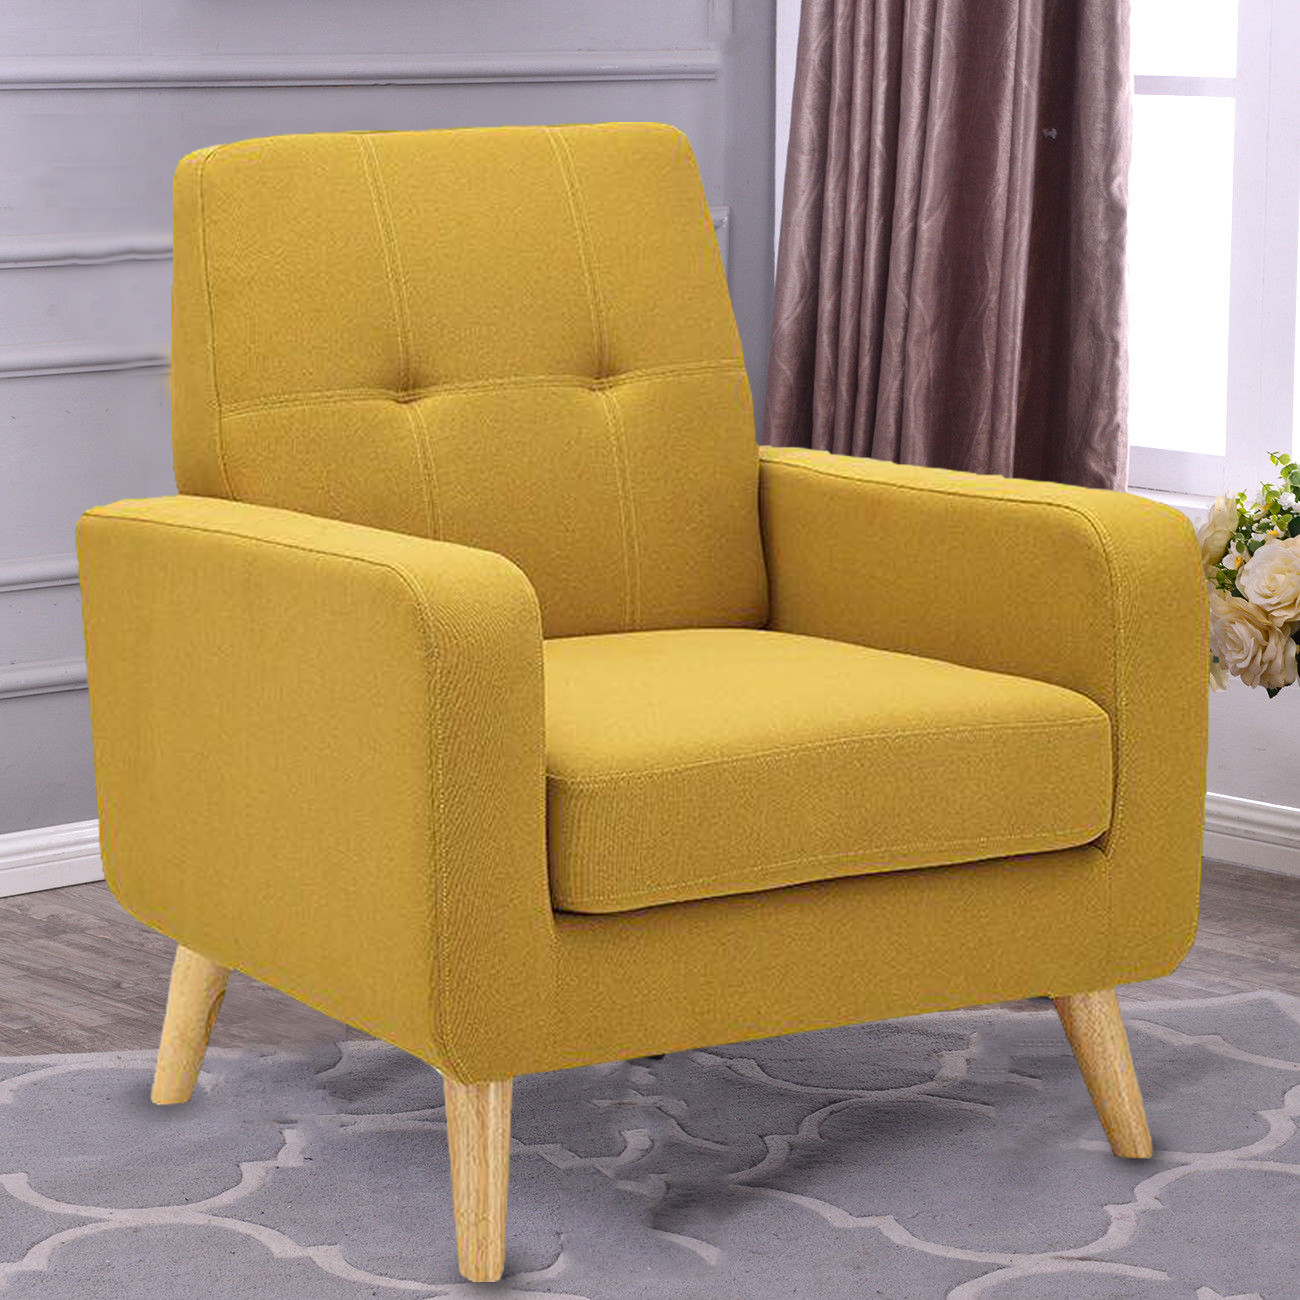 family room accent chairs arm chair accent single sofa linen fabric upholstered 15206 | 24053f29 764b 41ba b607 37a9a7803d13